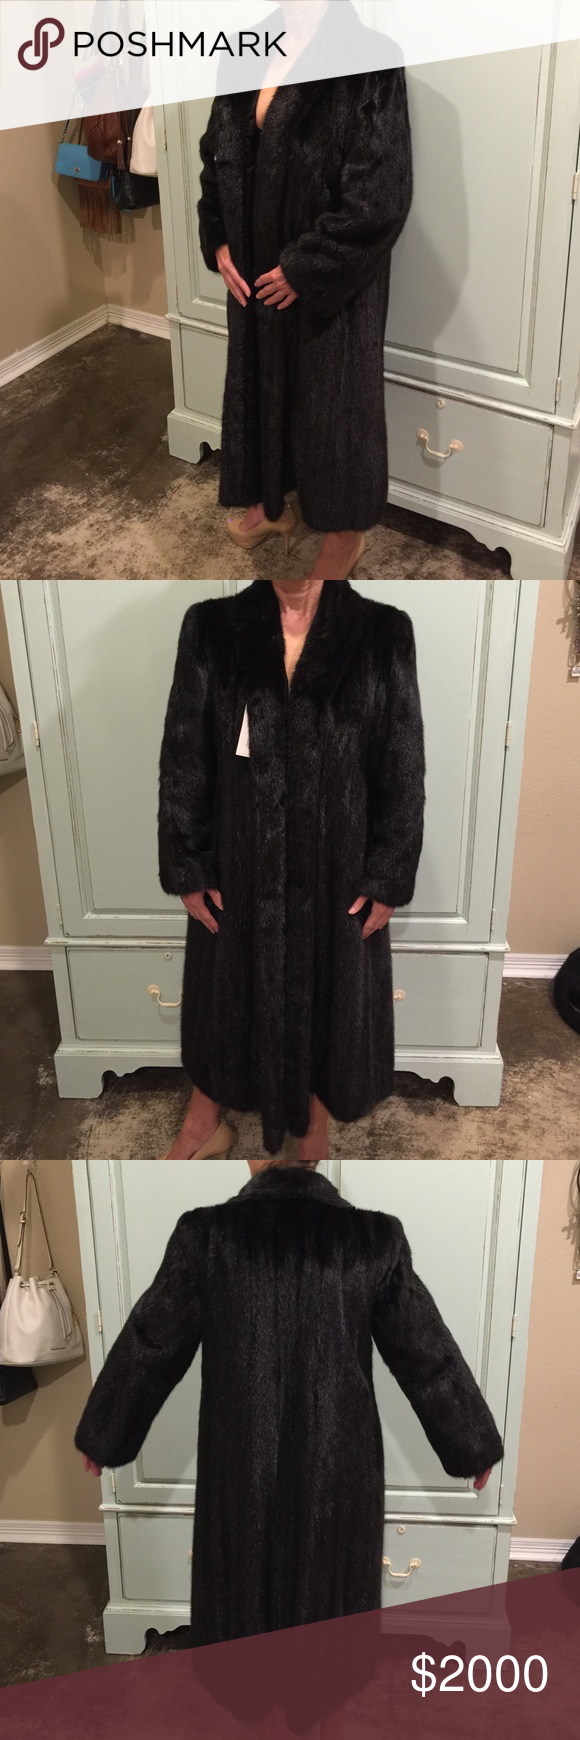 """*SALE* Mink Coat Female Pelts Med. Lighter weight Mink Coat with Female Pelts, Custom made in Hong Kong, Lighter Weight and Soft, in Great Condition and is stored each year, 42"""" Long, 17"""" Across Shoulder, Arm Length inside 15"""" and outside Arm 22"""", Mink is the #1 Seller Fur in the World.  It is absolutely beautiful !!!  Great Purchase!!! Jackets & Coats"""